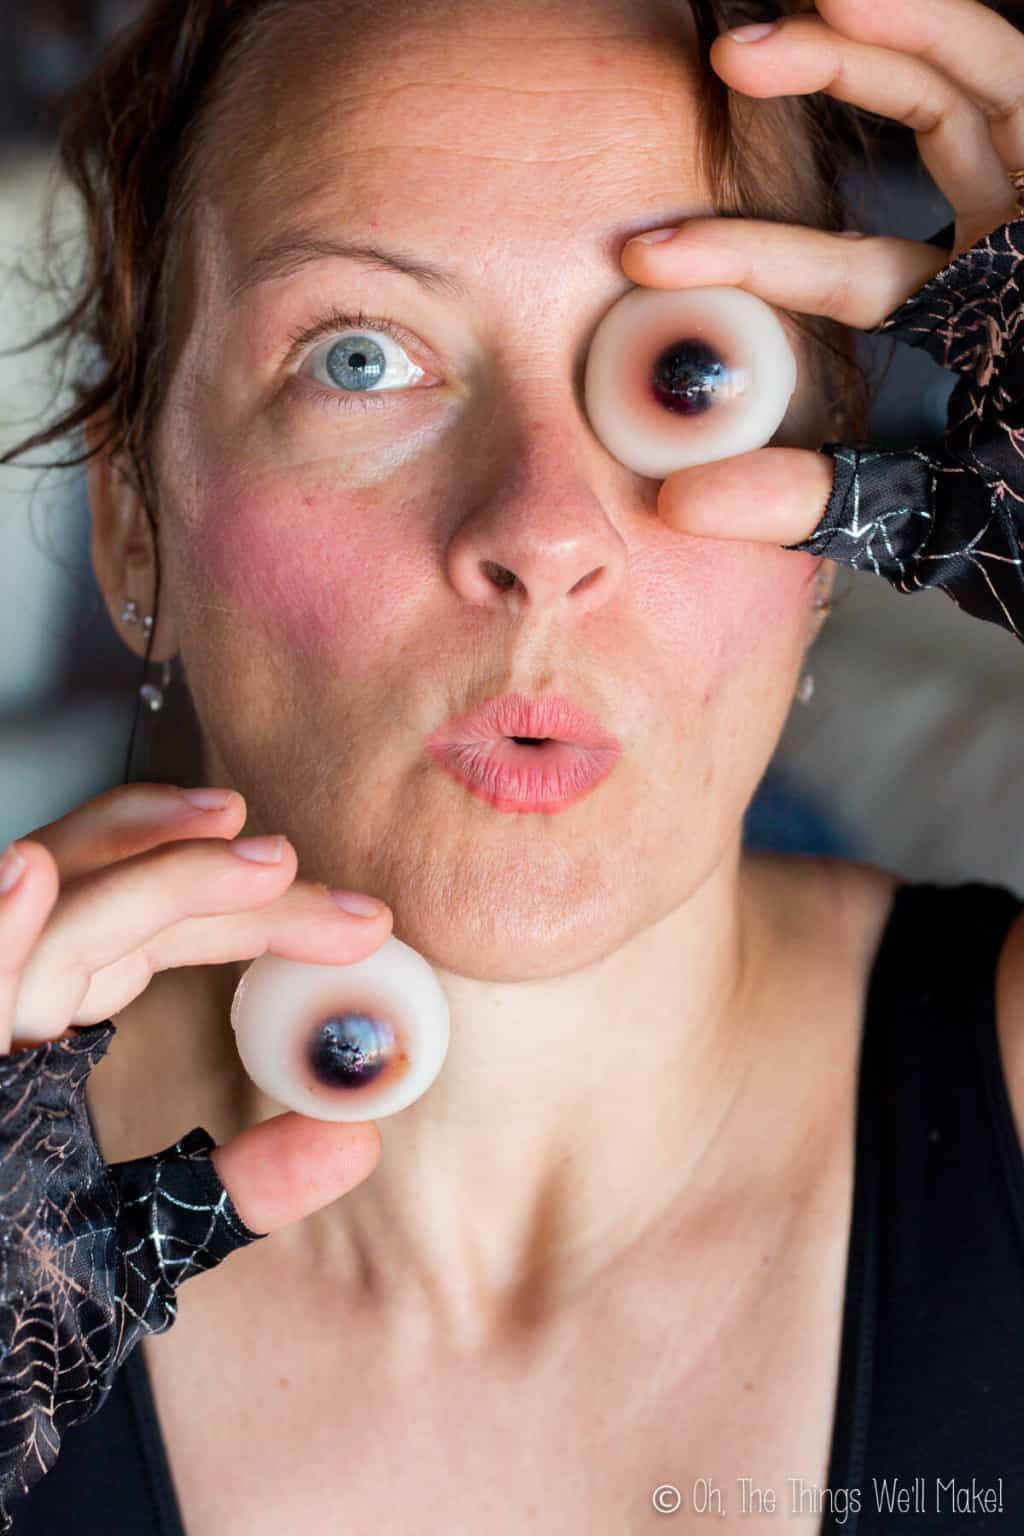 A woman holding up two homemade gummy eyeballs: one against one of her eyes and the other below her face.